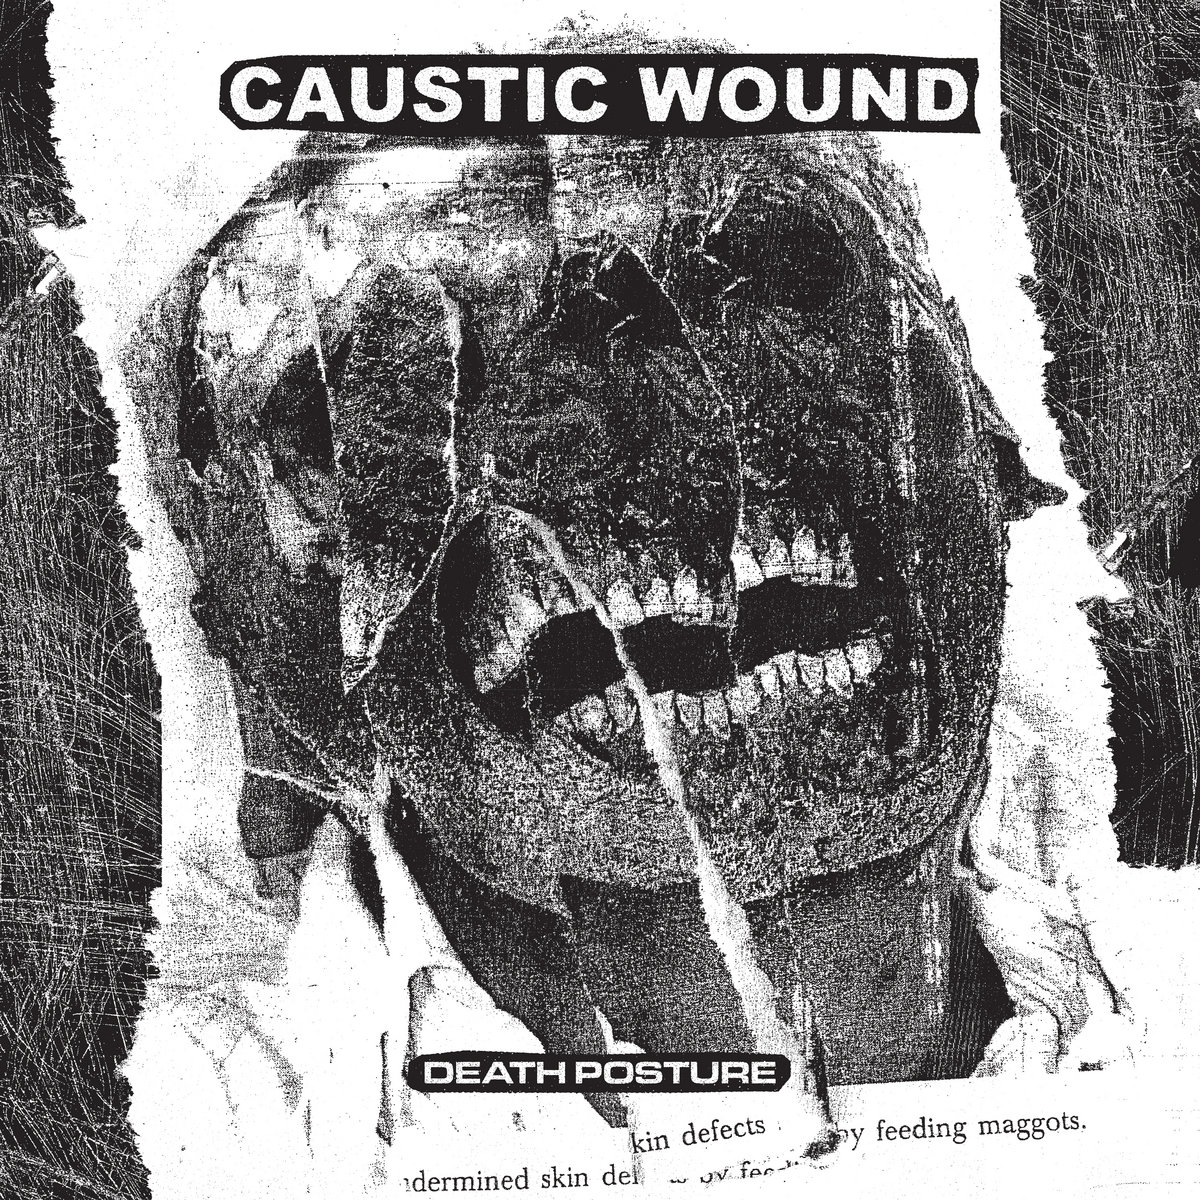 causticc_wound_death_posture_01